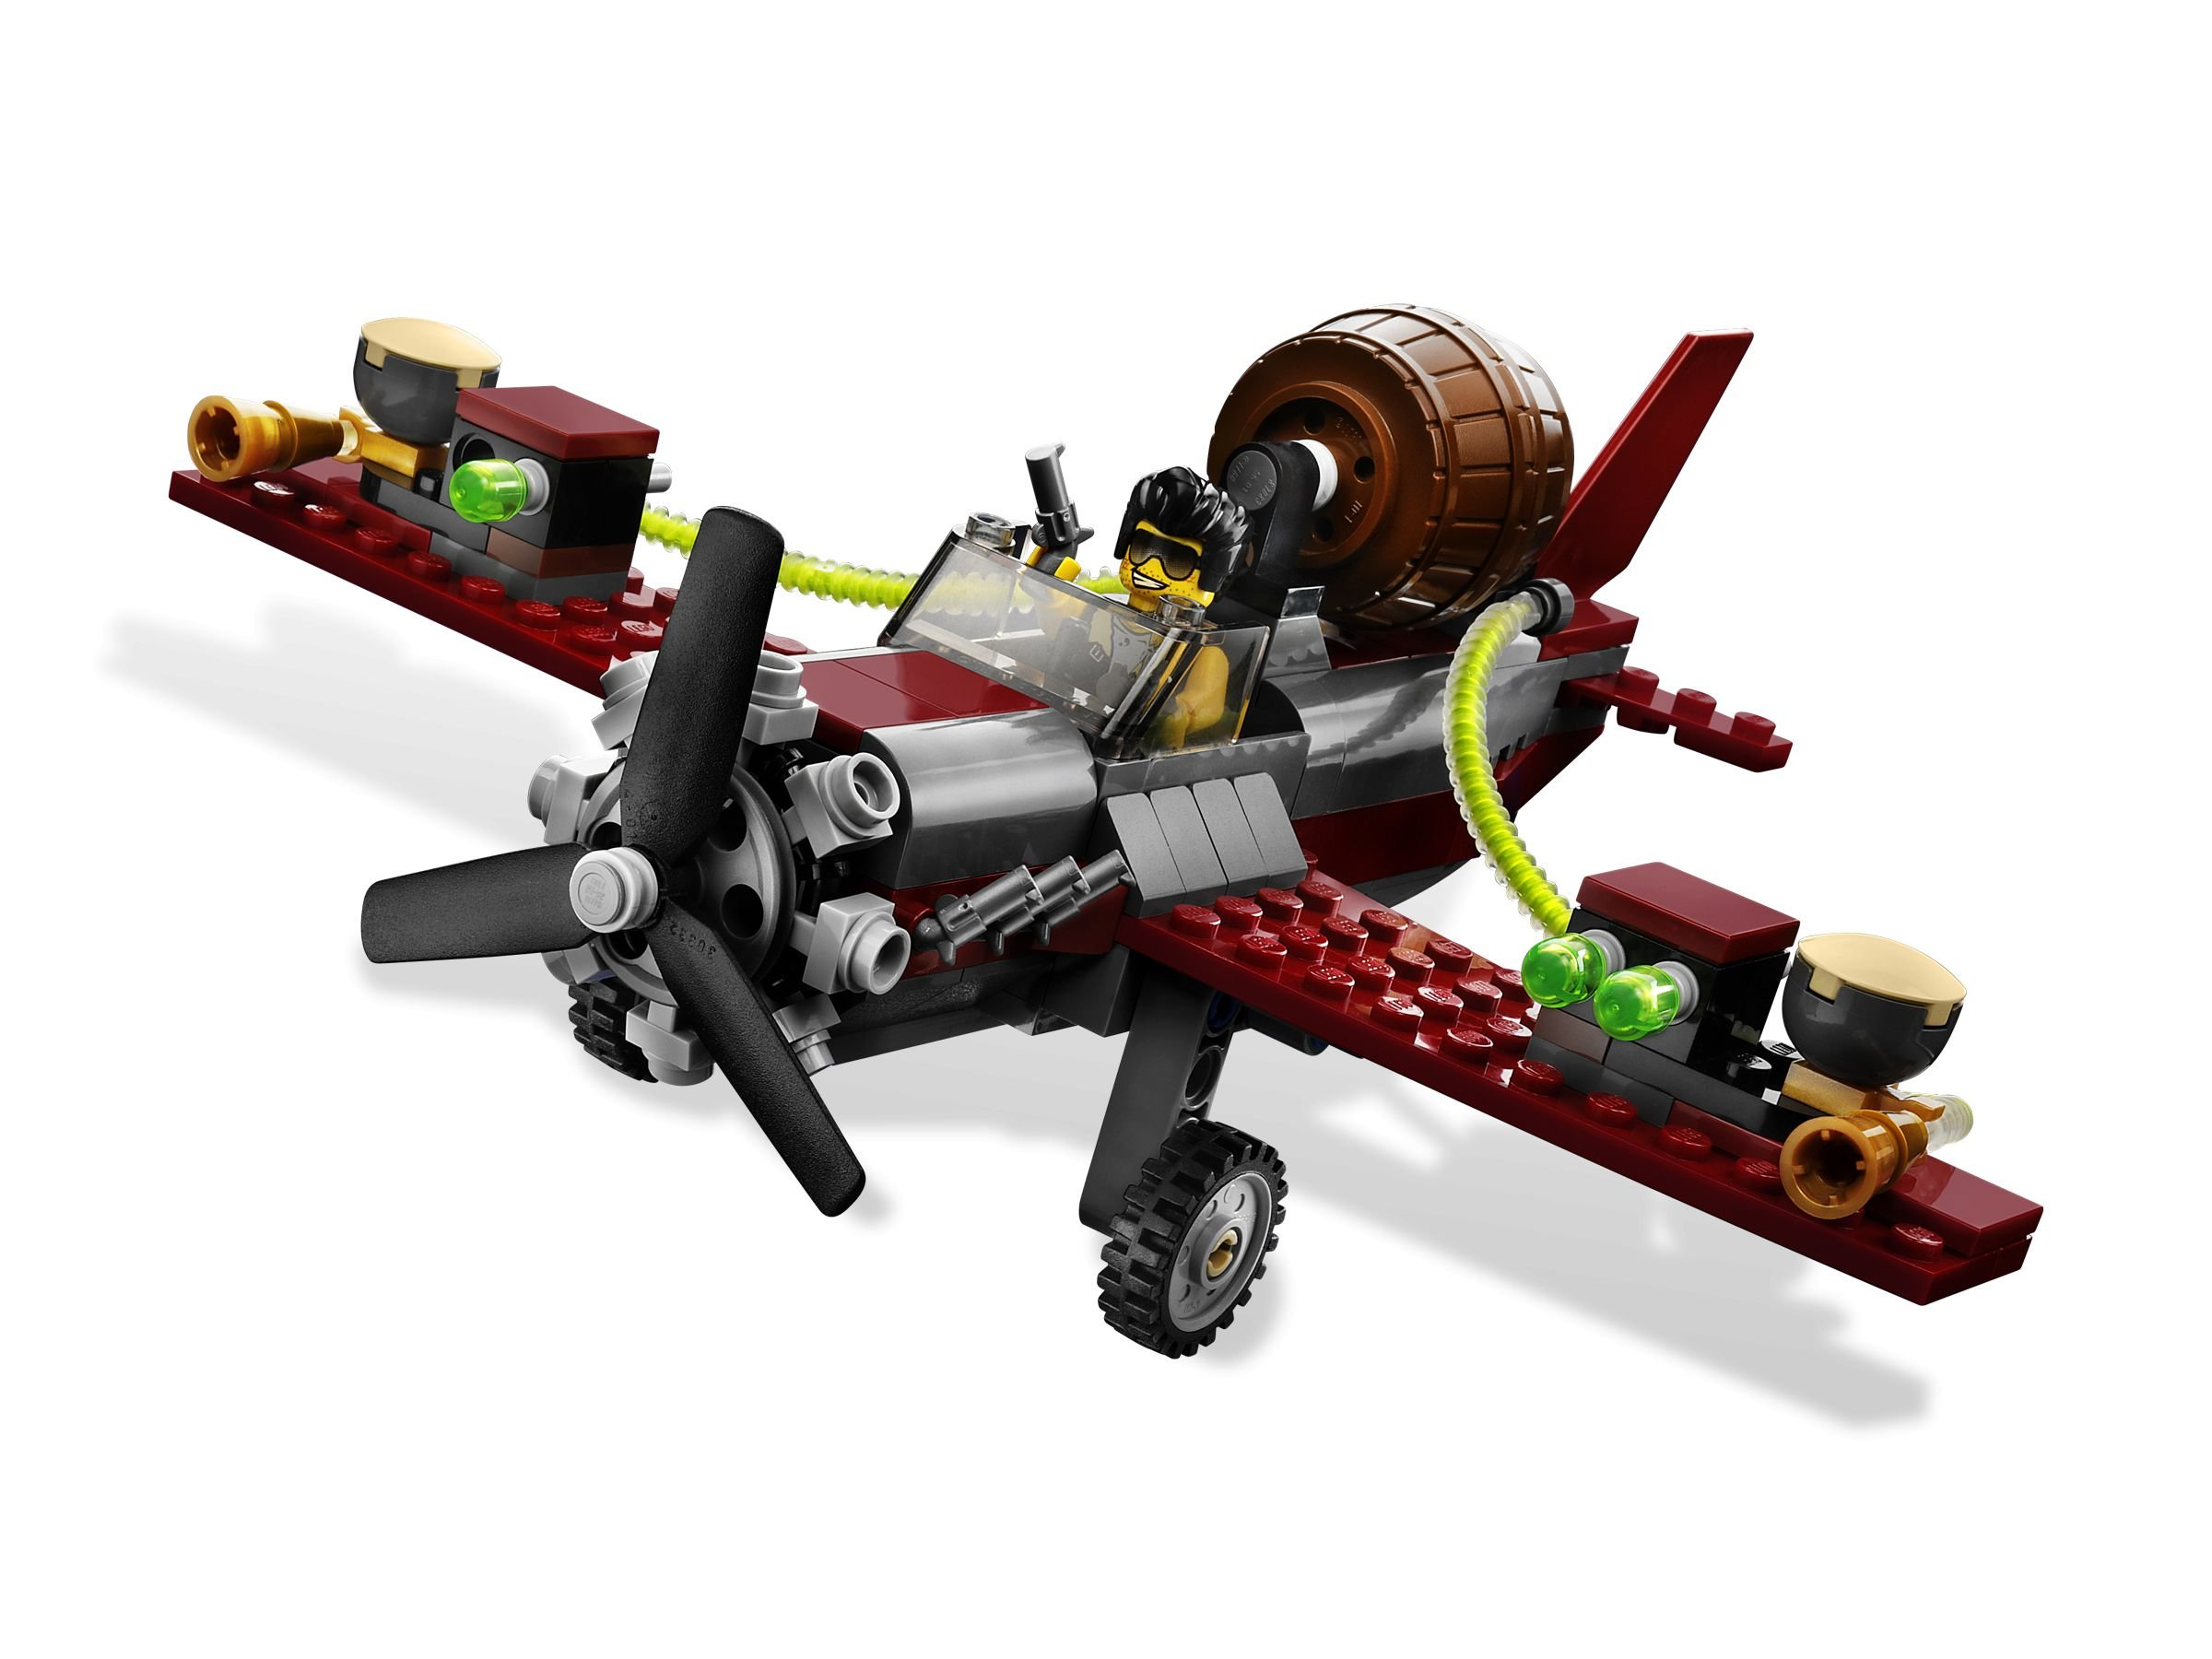 LEGO Monster Fighters 9467 The Ghost Train LEGO_9467_alt2.jpg